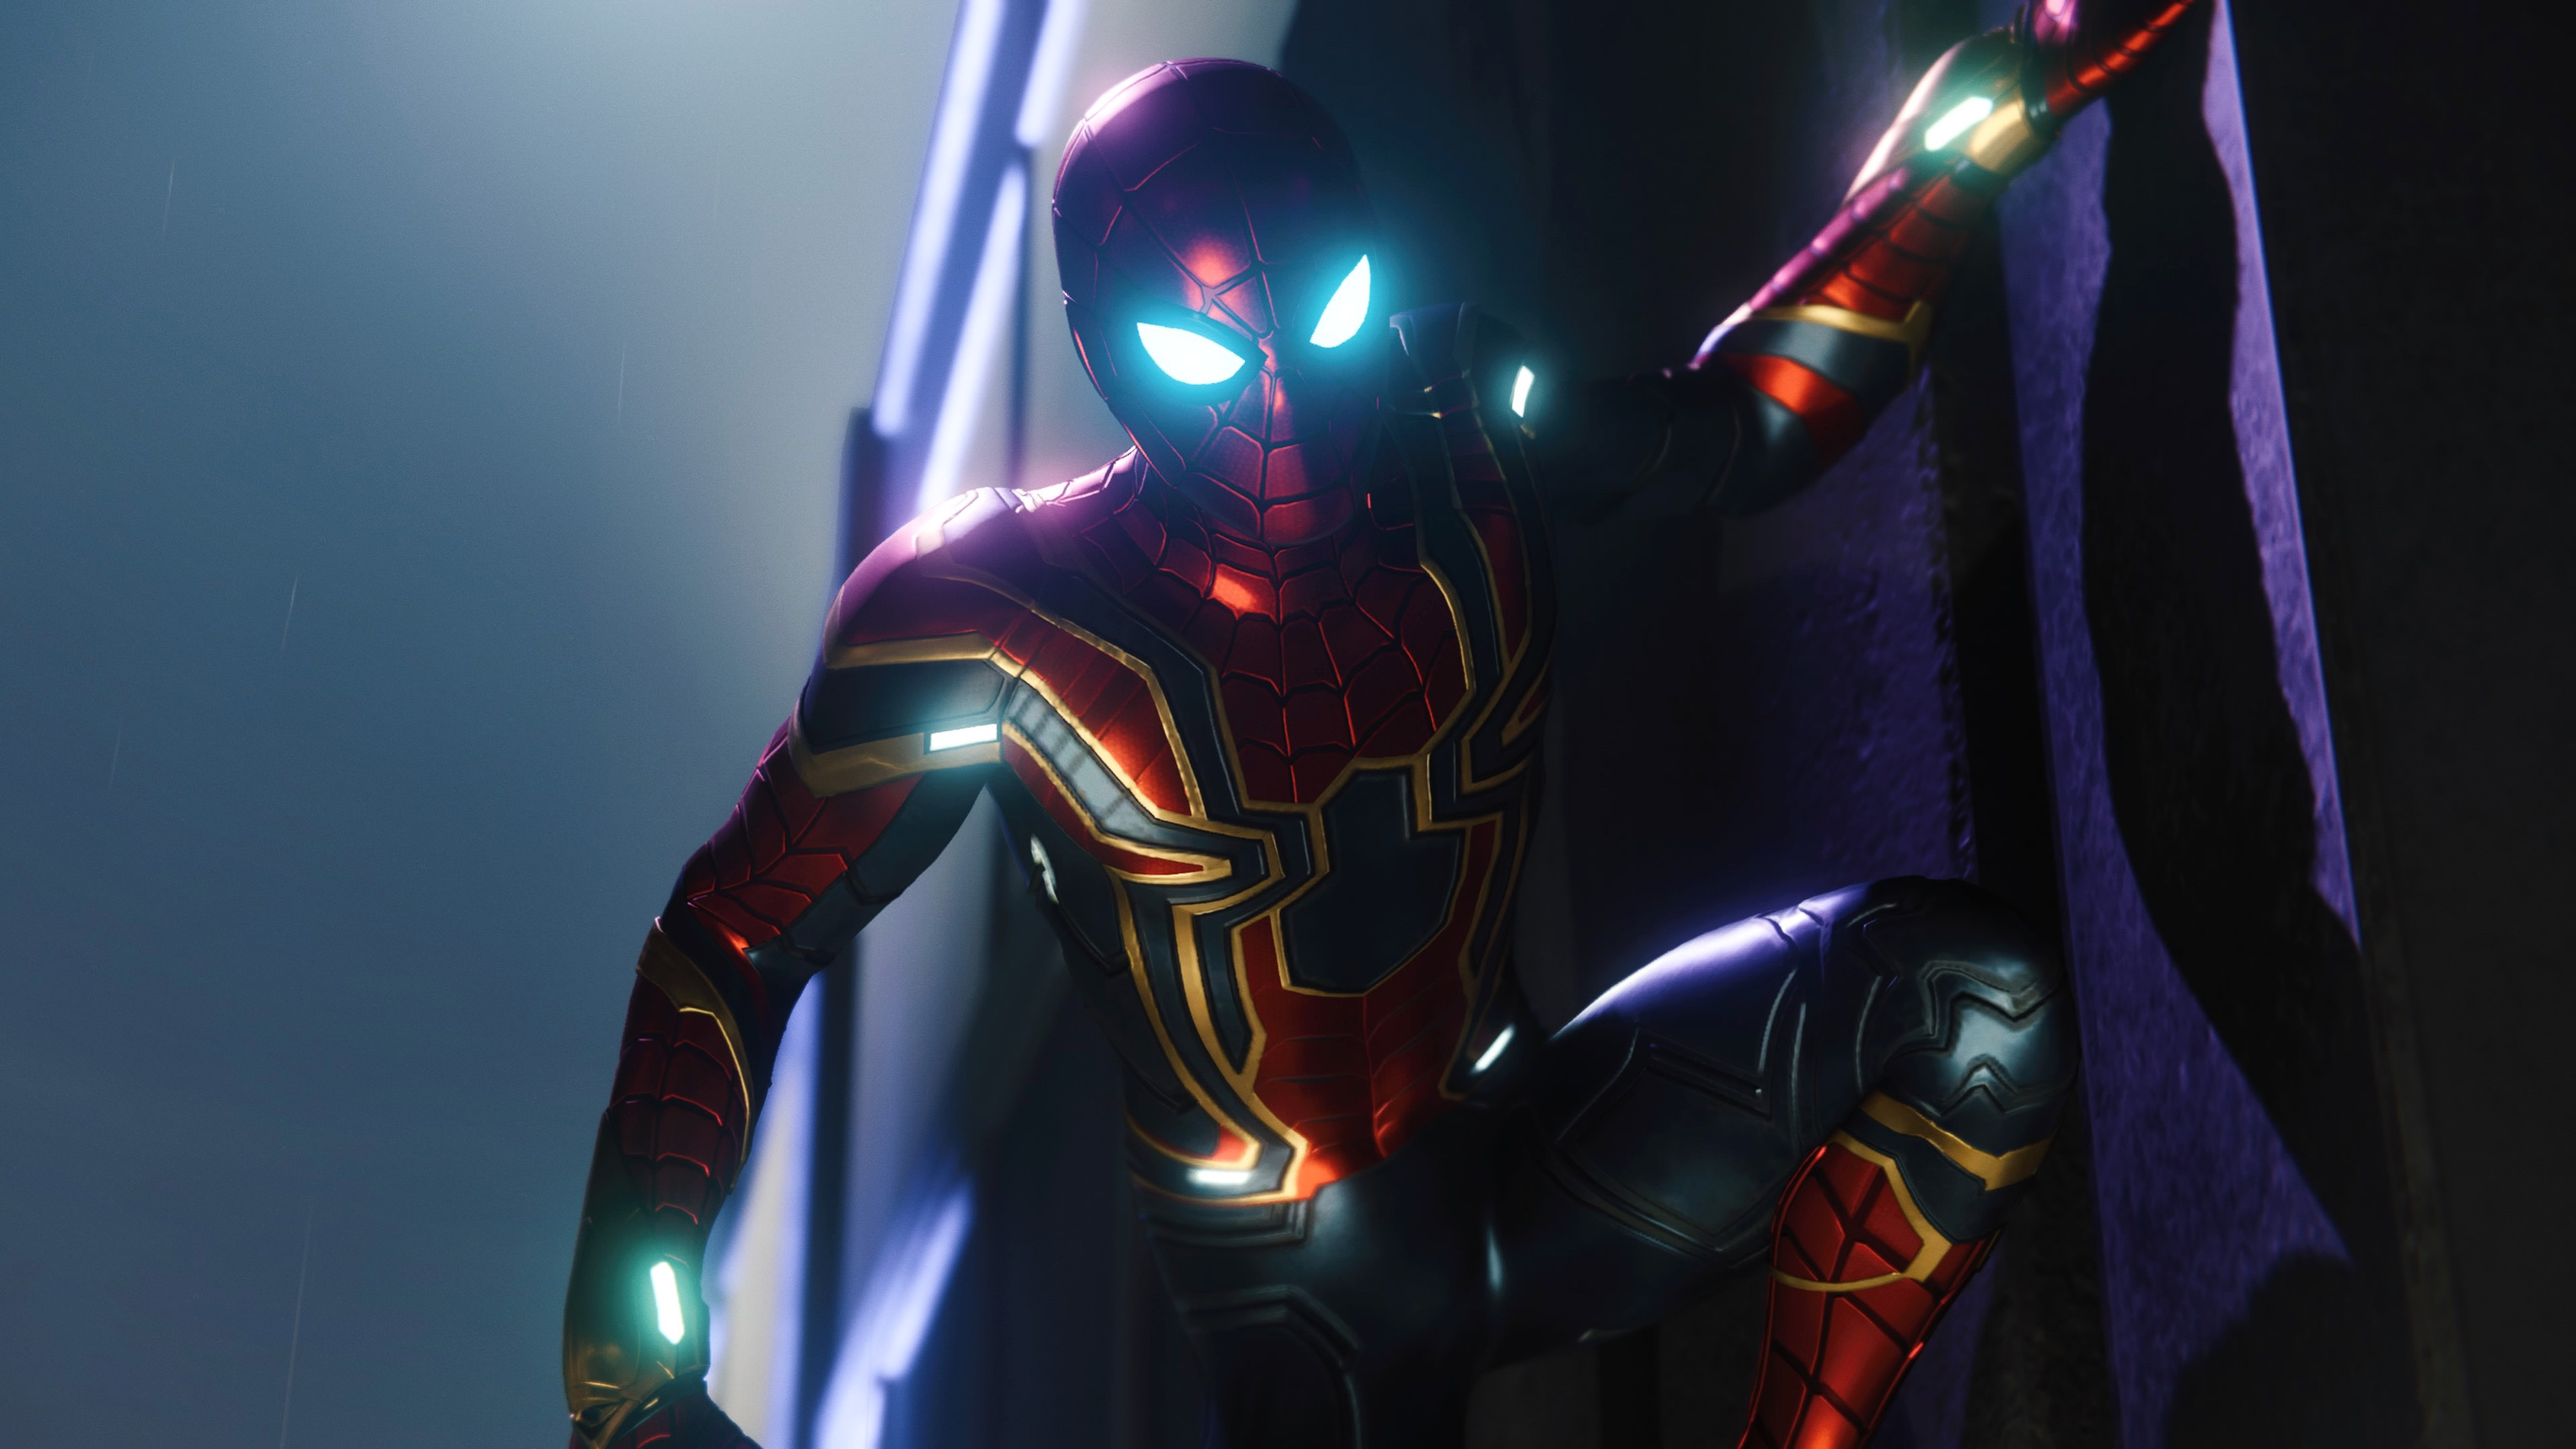 b251aa8427 Spider-Man PS4 suits: every costume & comic book connection - Polygon